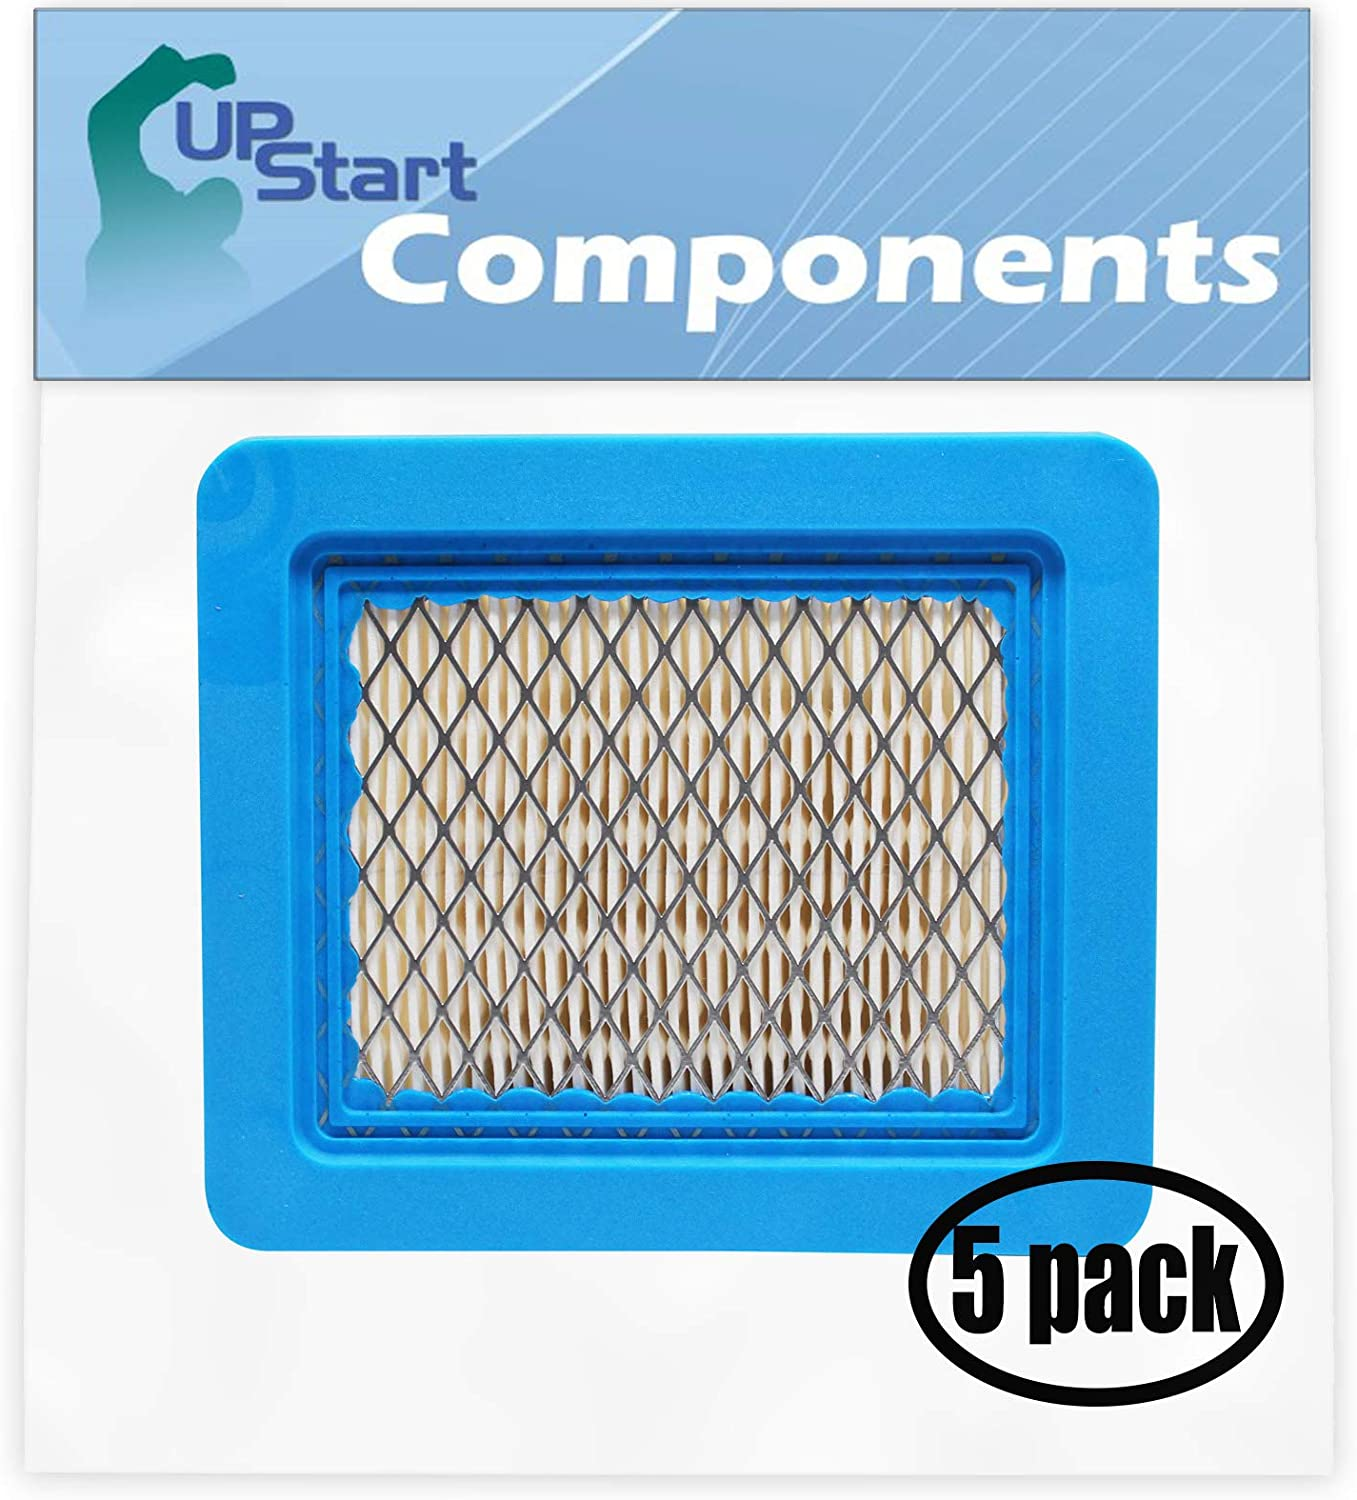 UpStart Components 5-Pack Replacement for Toro 20037 (240000001-240999999)(2004) Lawn Mower Flat Air Filter Cartridge - Compatible with Toro 119-1909 Filter